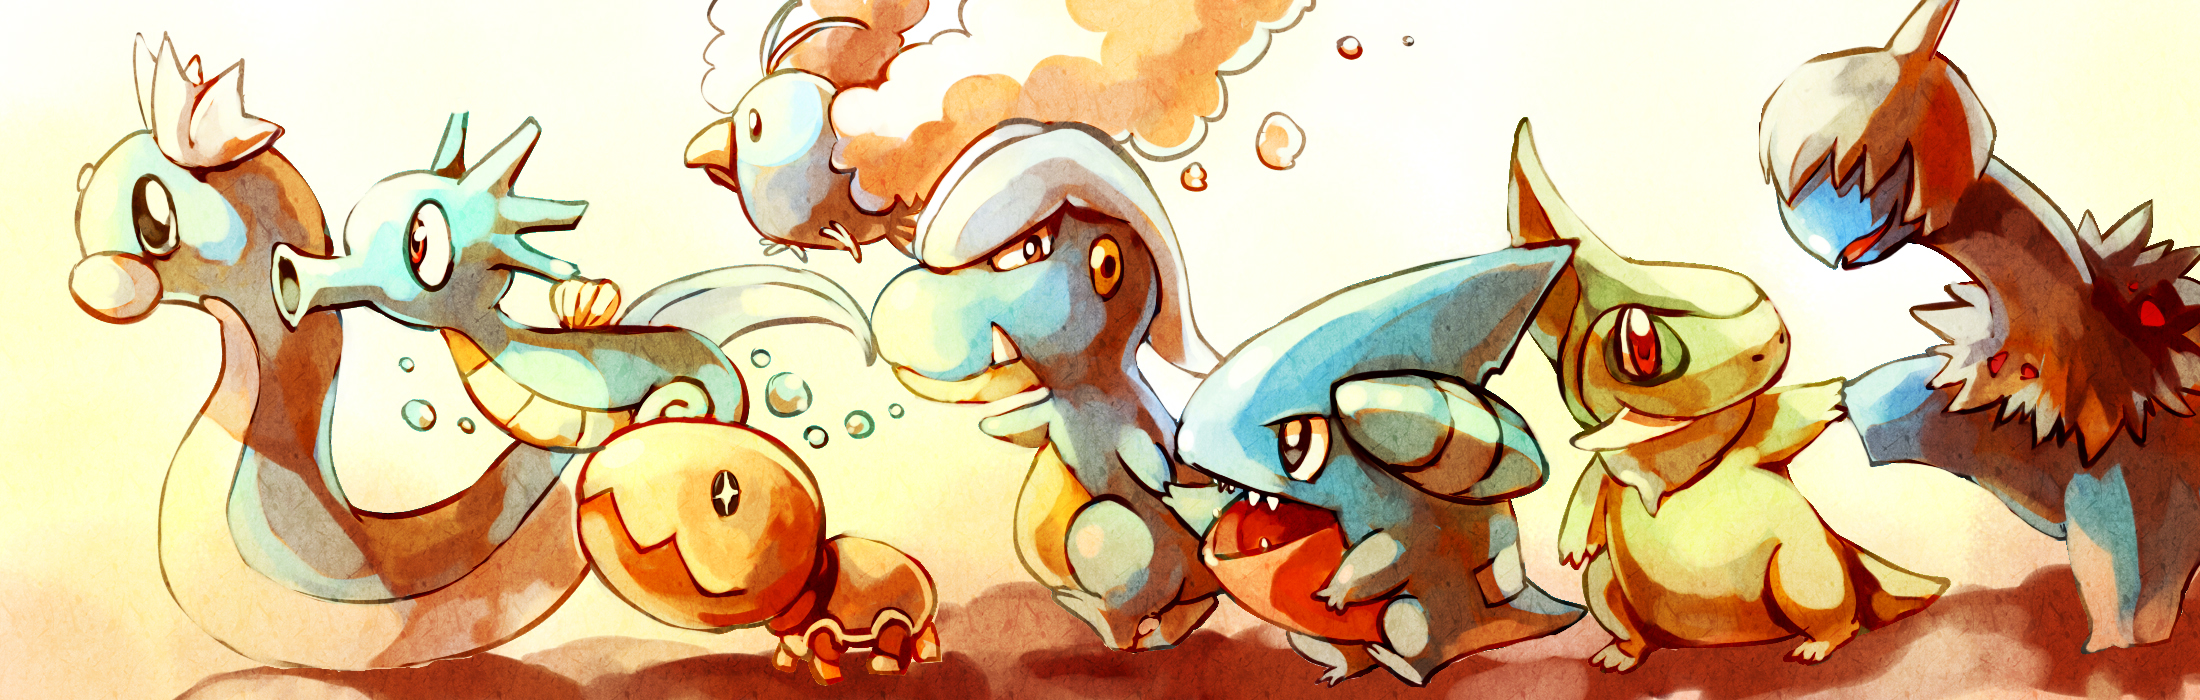 Pokemon : Baby Dragons by Sa-Dui